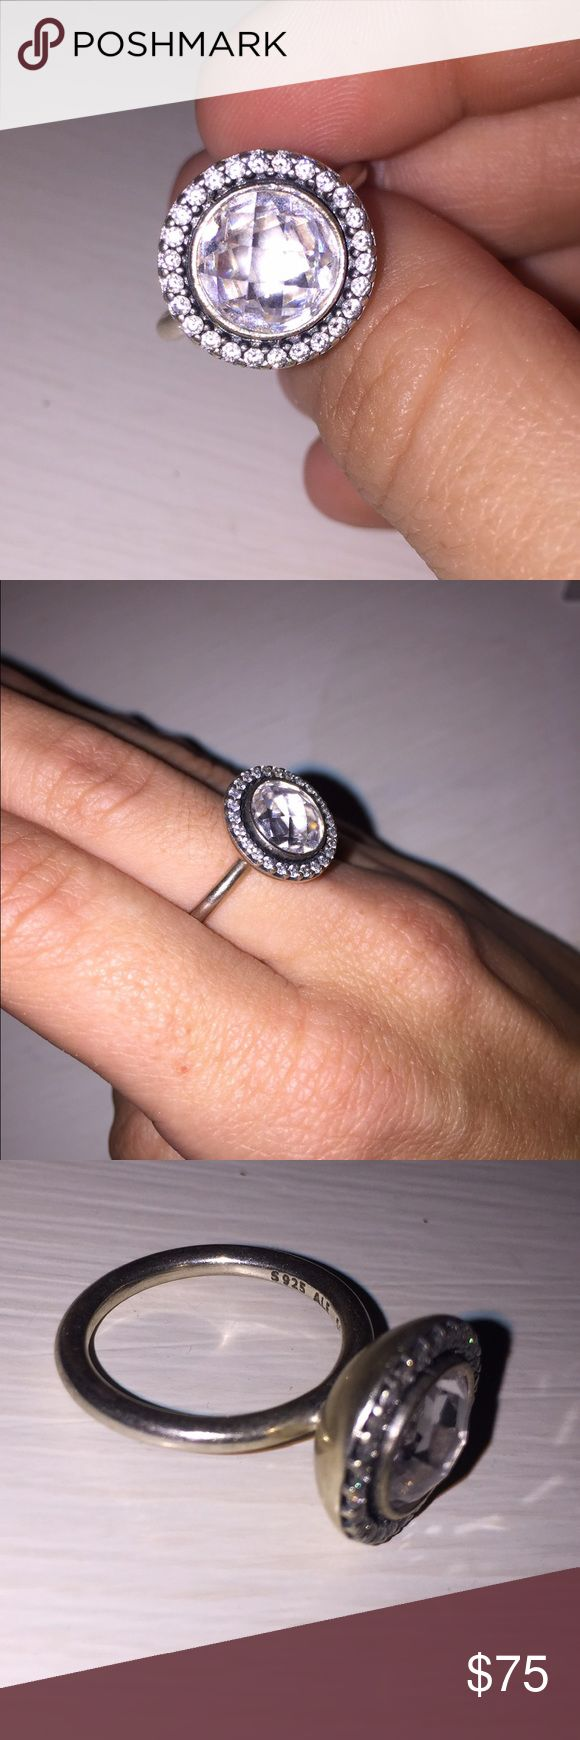 Pandora Brilliant Legacy ring - size 4.5 Excellent condition, bought for $115 from Pandora, never wear it anymore, size 4.5 Pandora Jewelry Rings